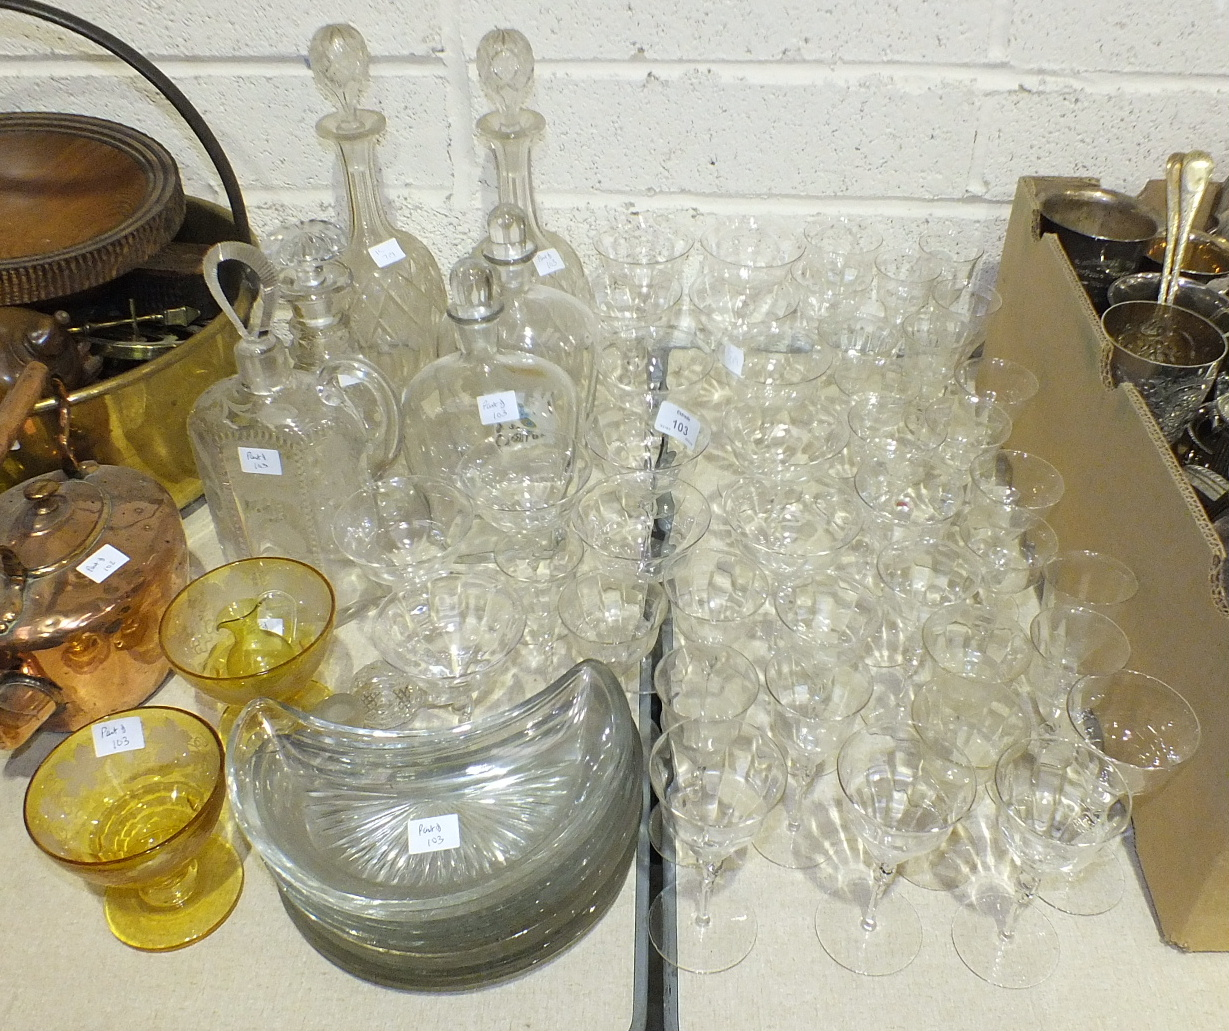 Lot 103 - A collection of cut glass and other glassware, including a ship's decanter, five other decanters,